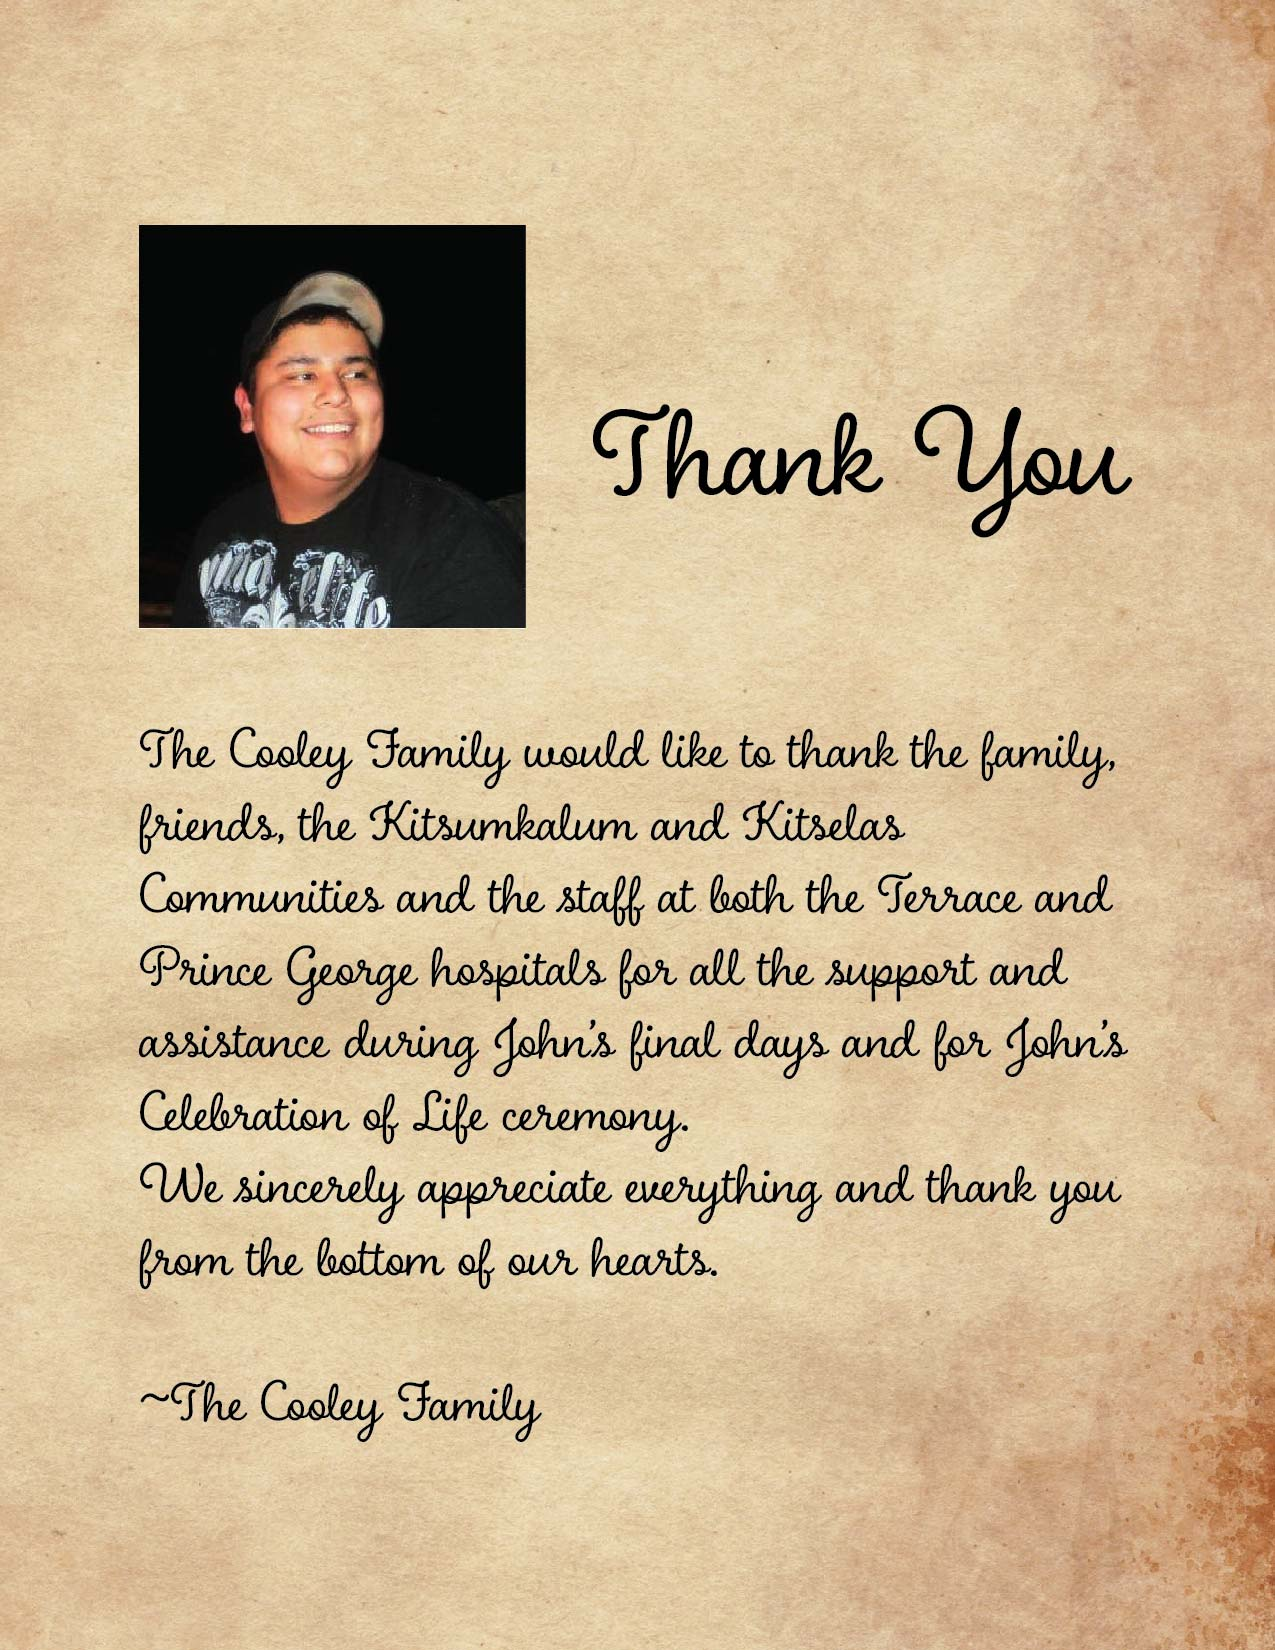 Thank you from the Cooley Family